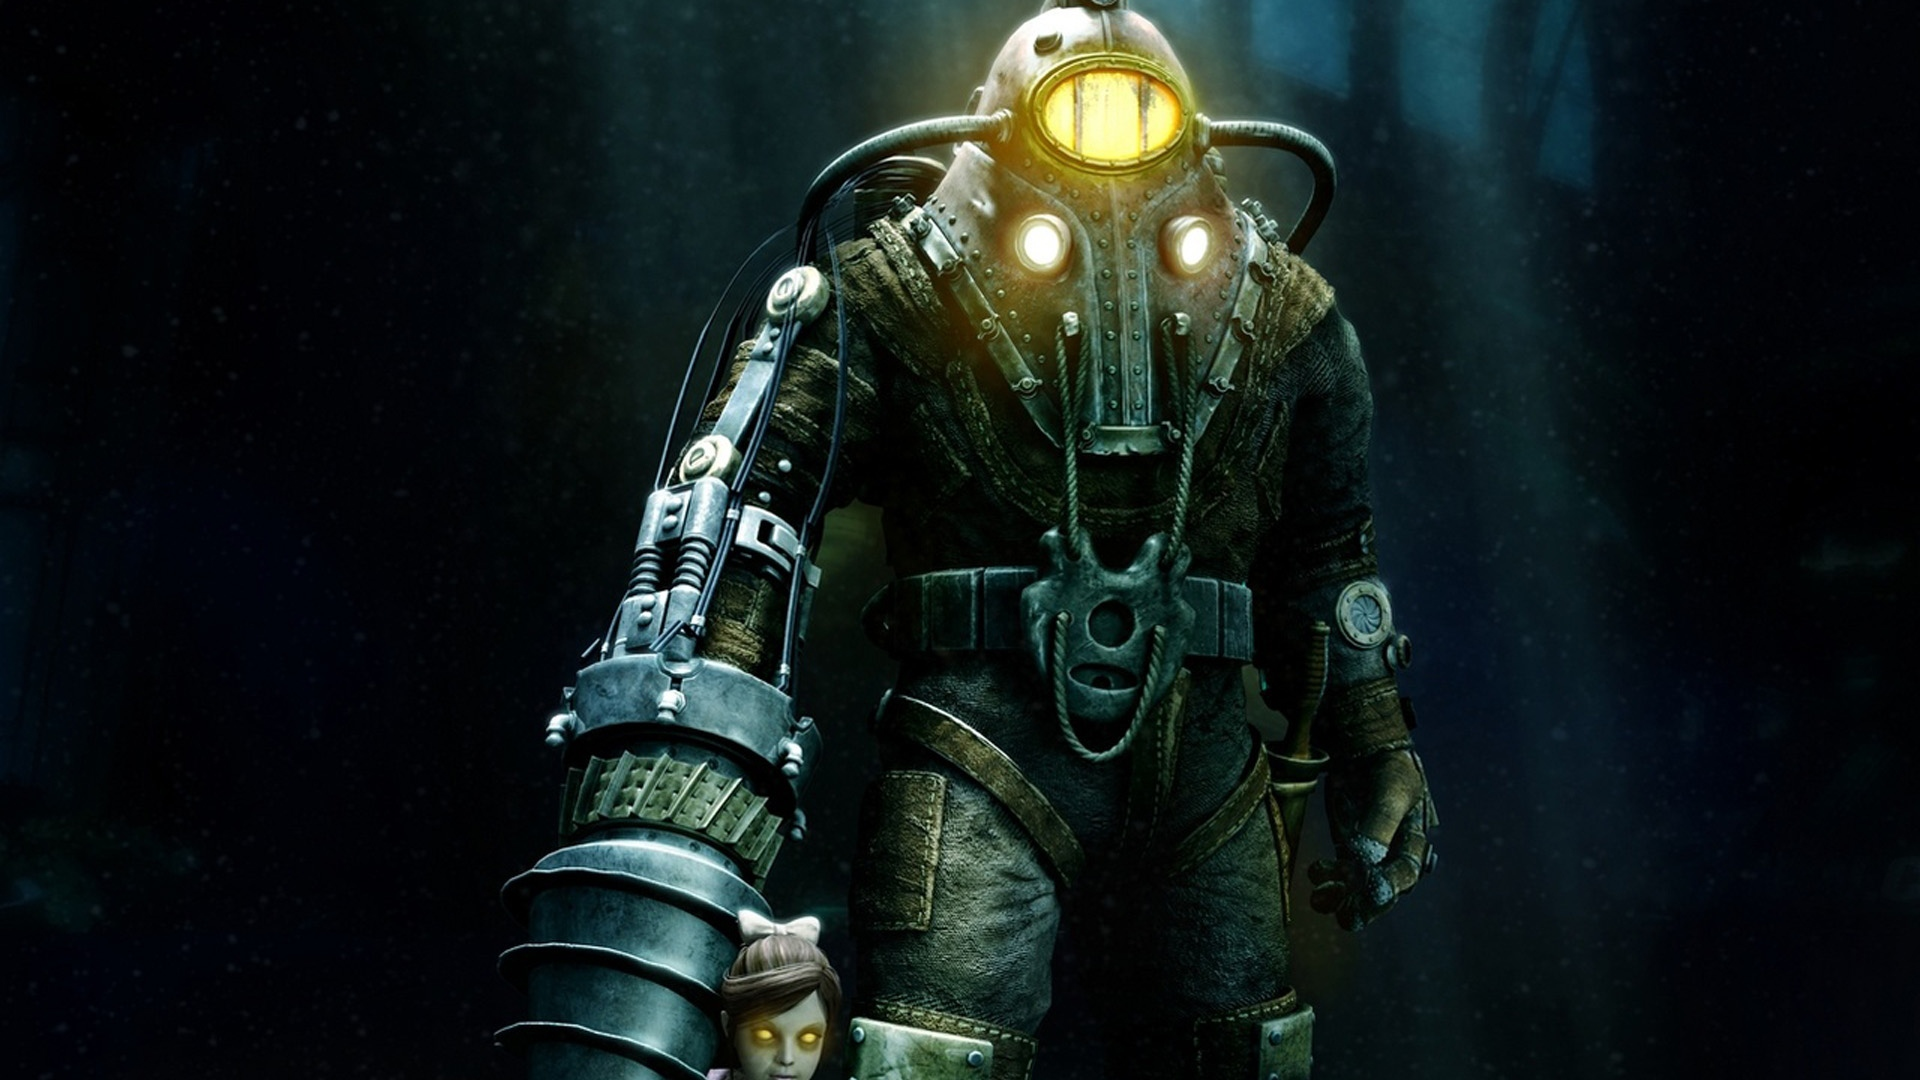 Download Wallpaper 1920x1080 Bioshock Little Sister Big Daddy